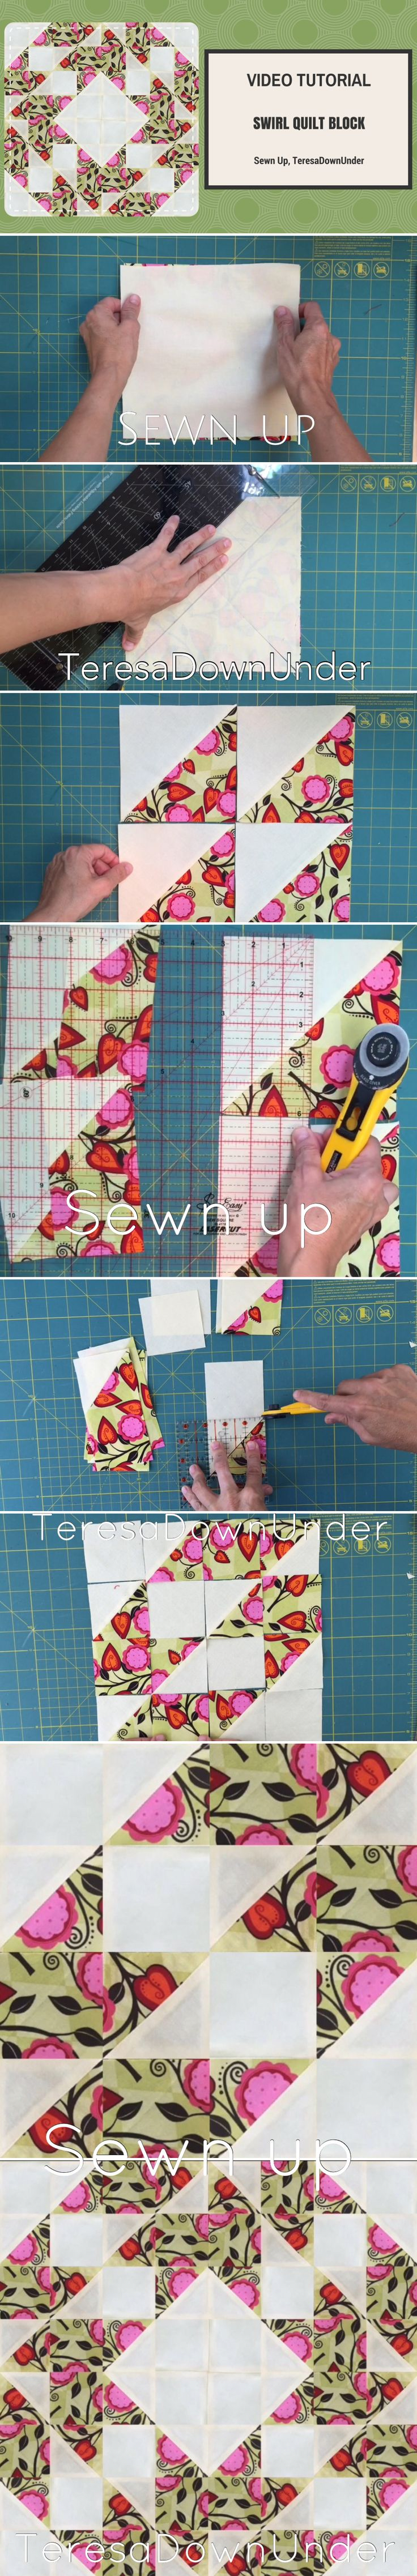 Video tutorial: Swirl quilt block - quick and easy quilting